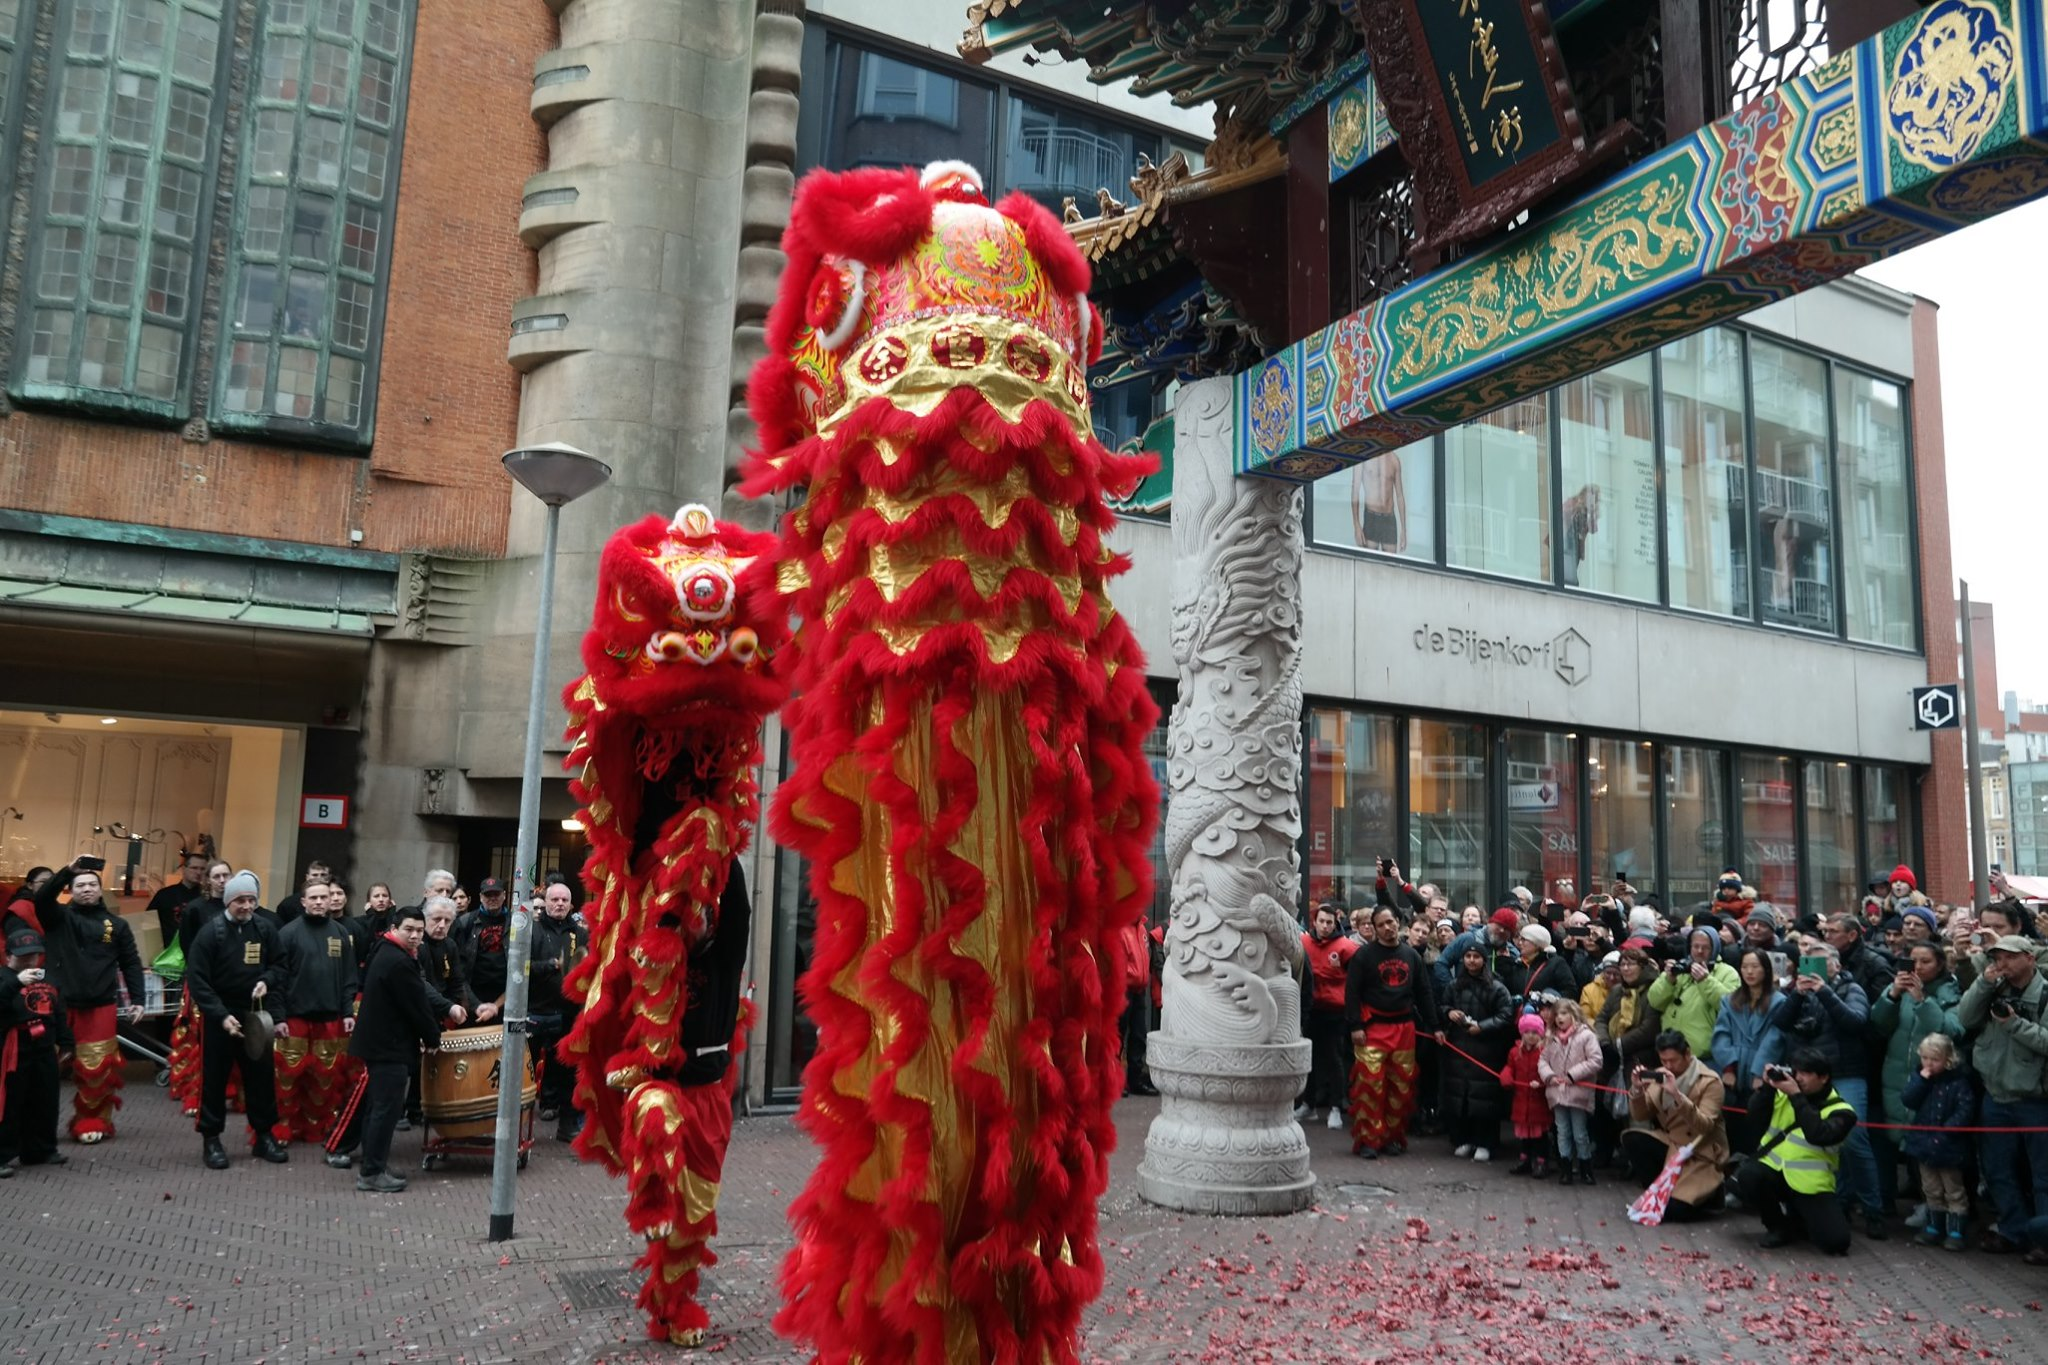 Liondance The Hague